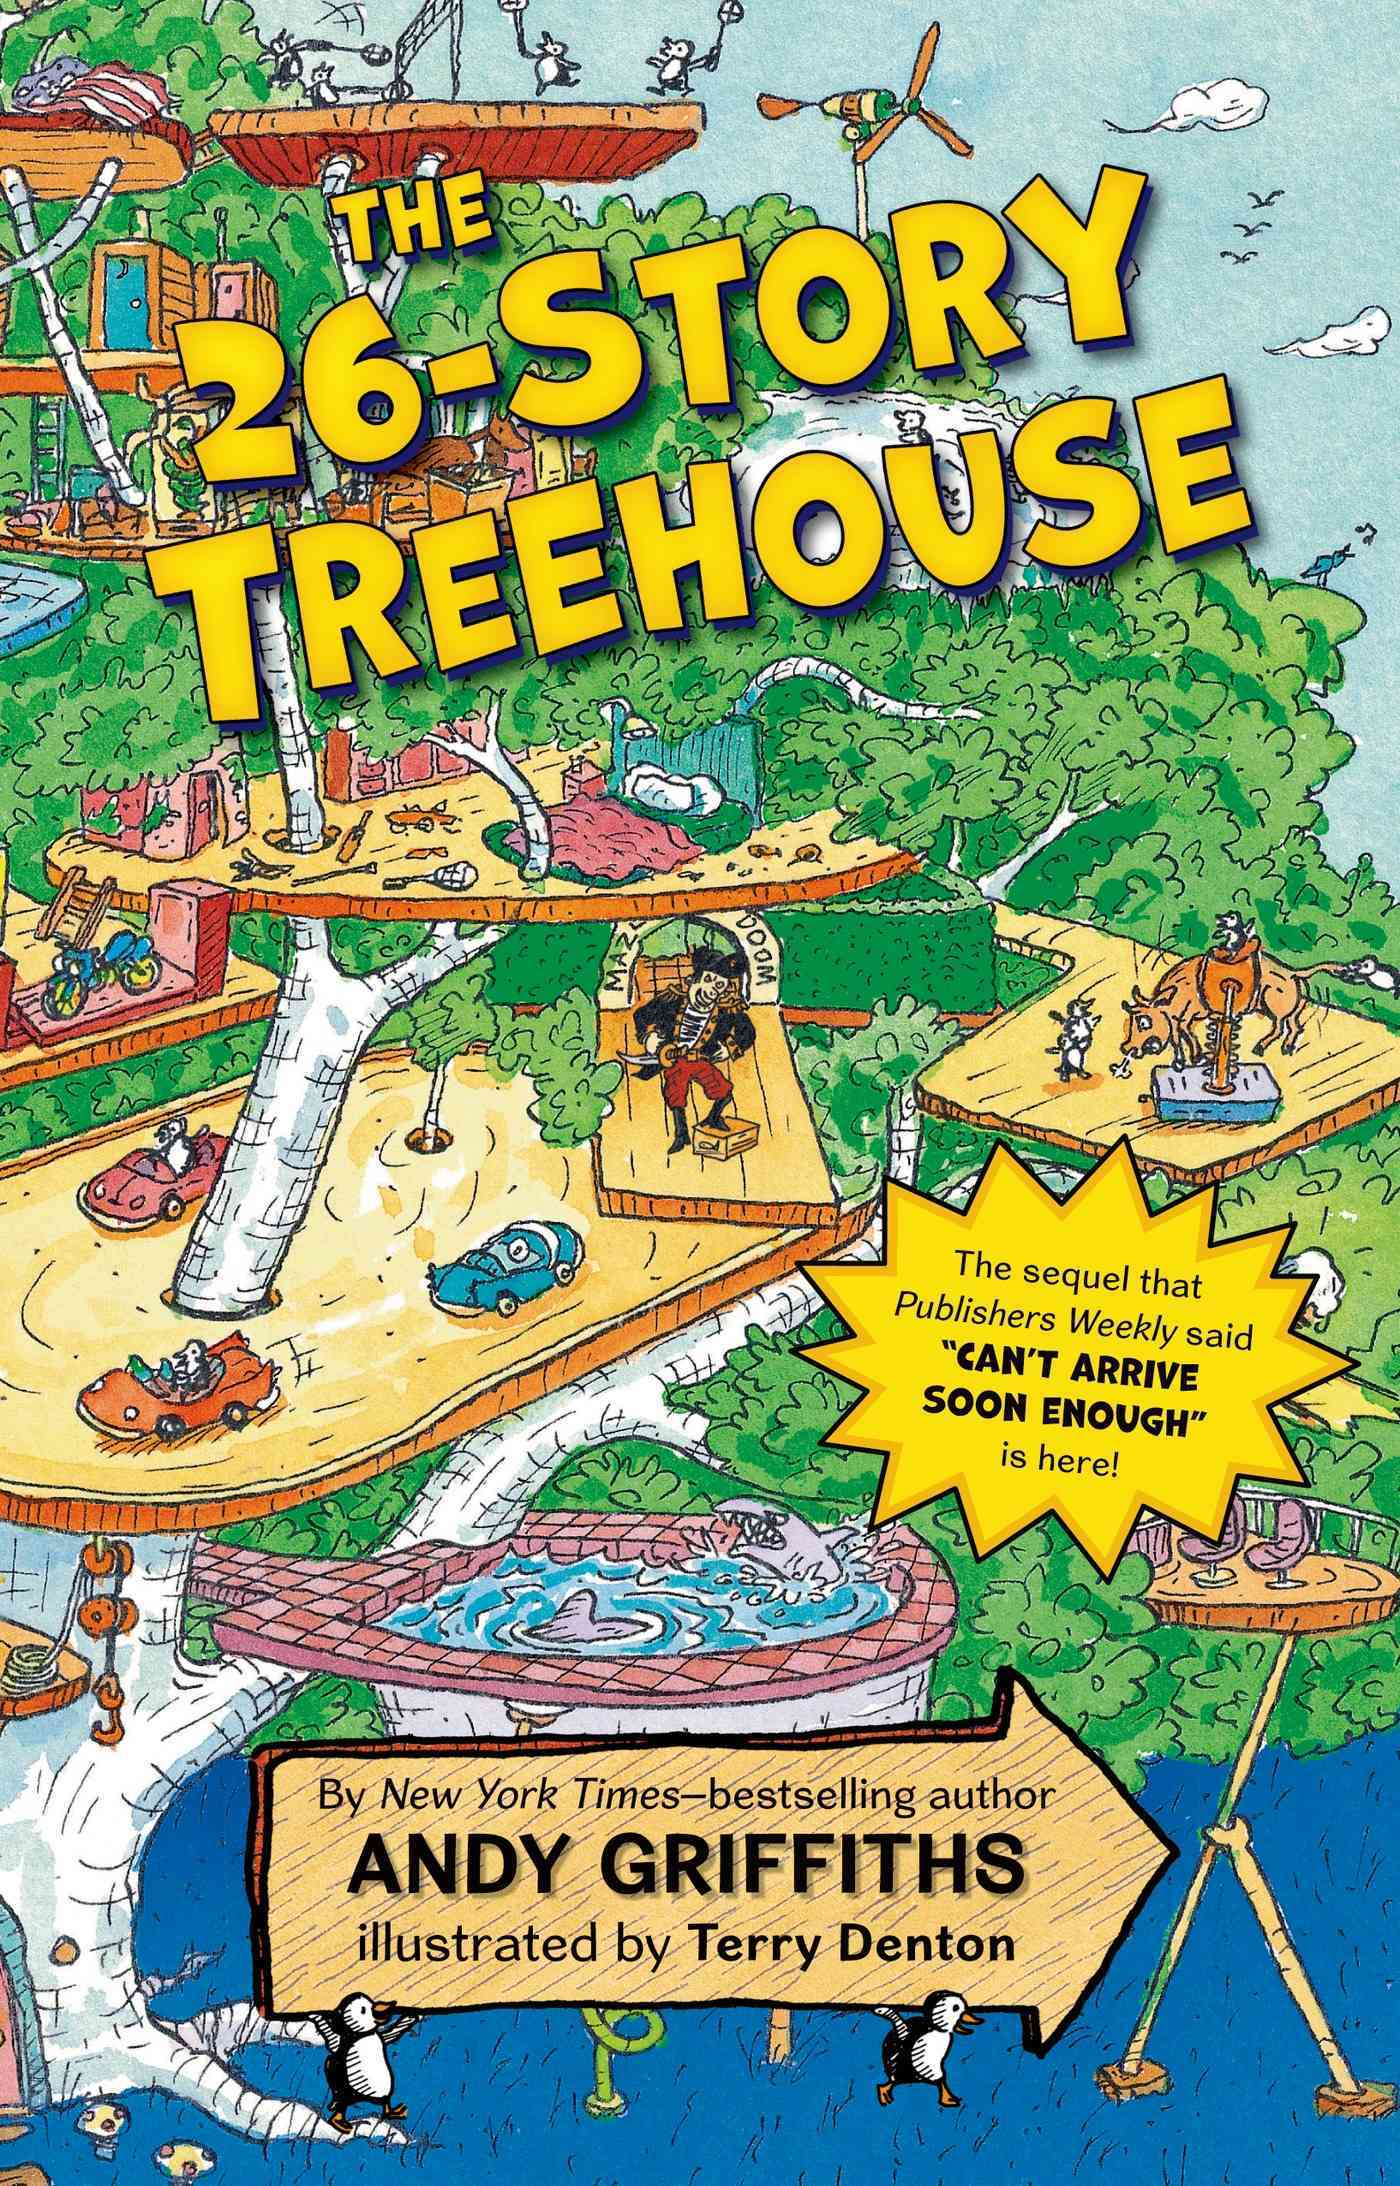 The 26-story Treehouse By Griffiths, Andy/ Denton, Terry (ILT)